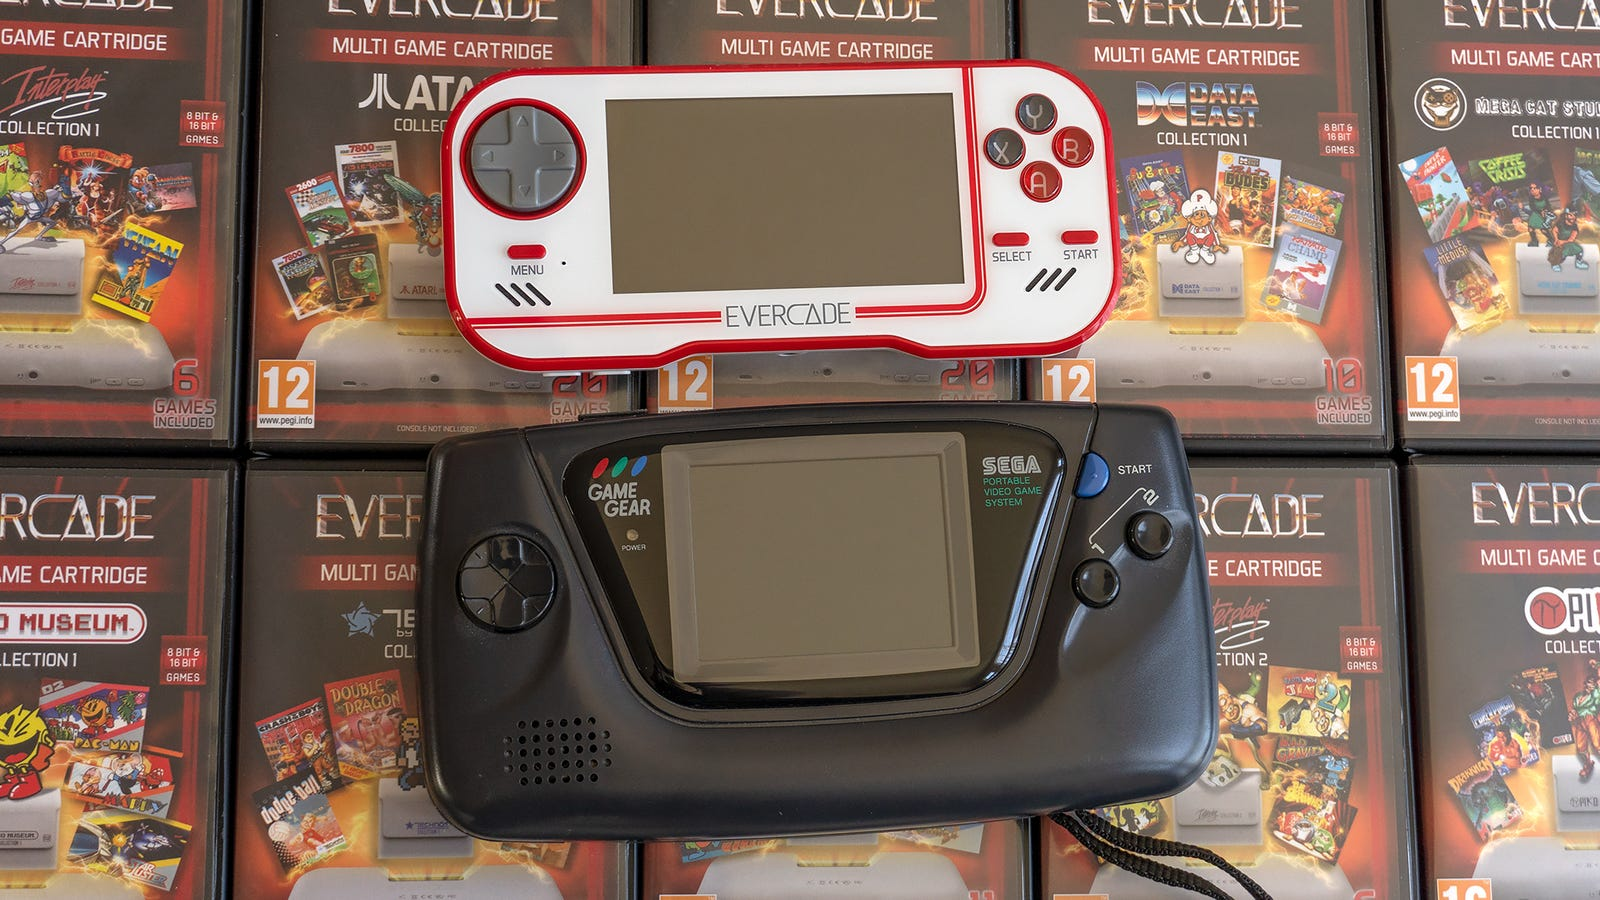 It's not quite as large as the Sega Game Gear, but the Evercade is a beefy handheld.